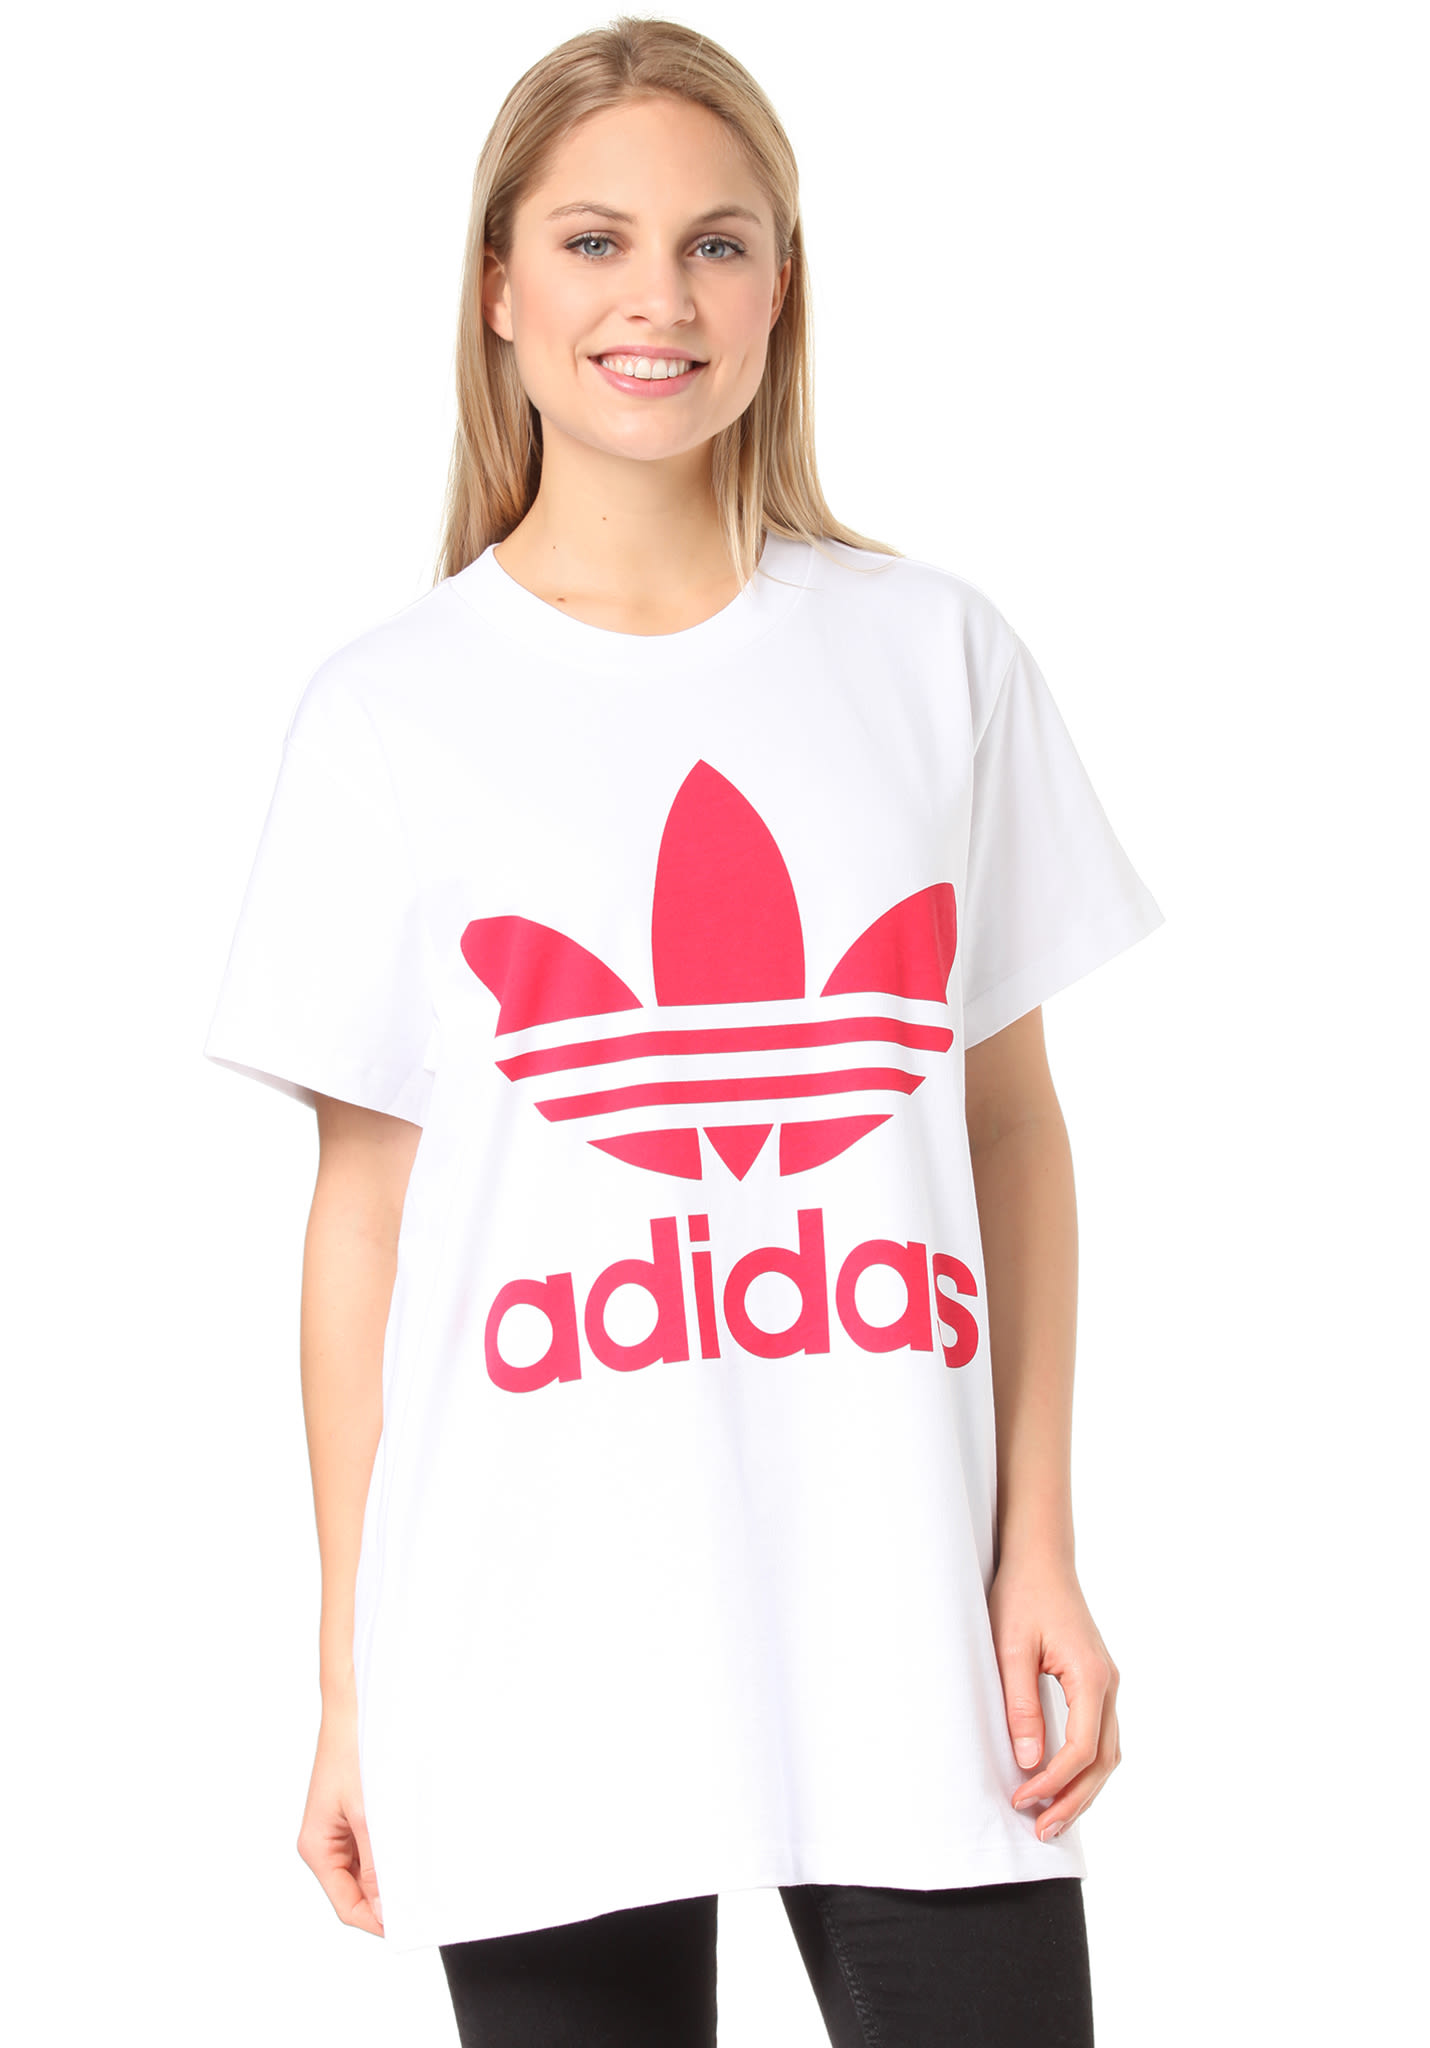 8cb57a9368dd ADIDAS ORIGINALS Big Trefoil - T-Shirt for Women - White - Planet Sports